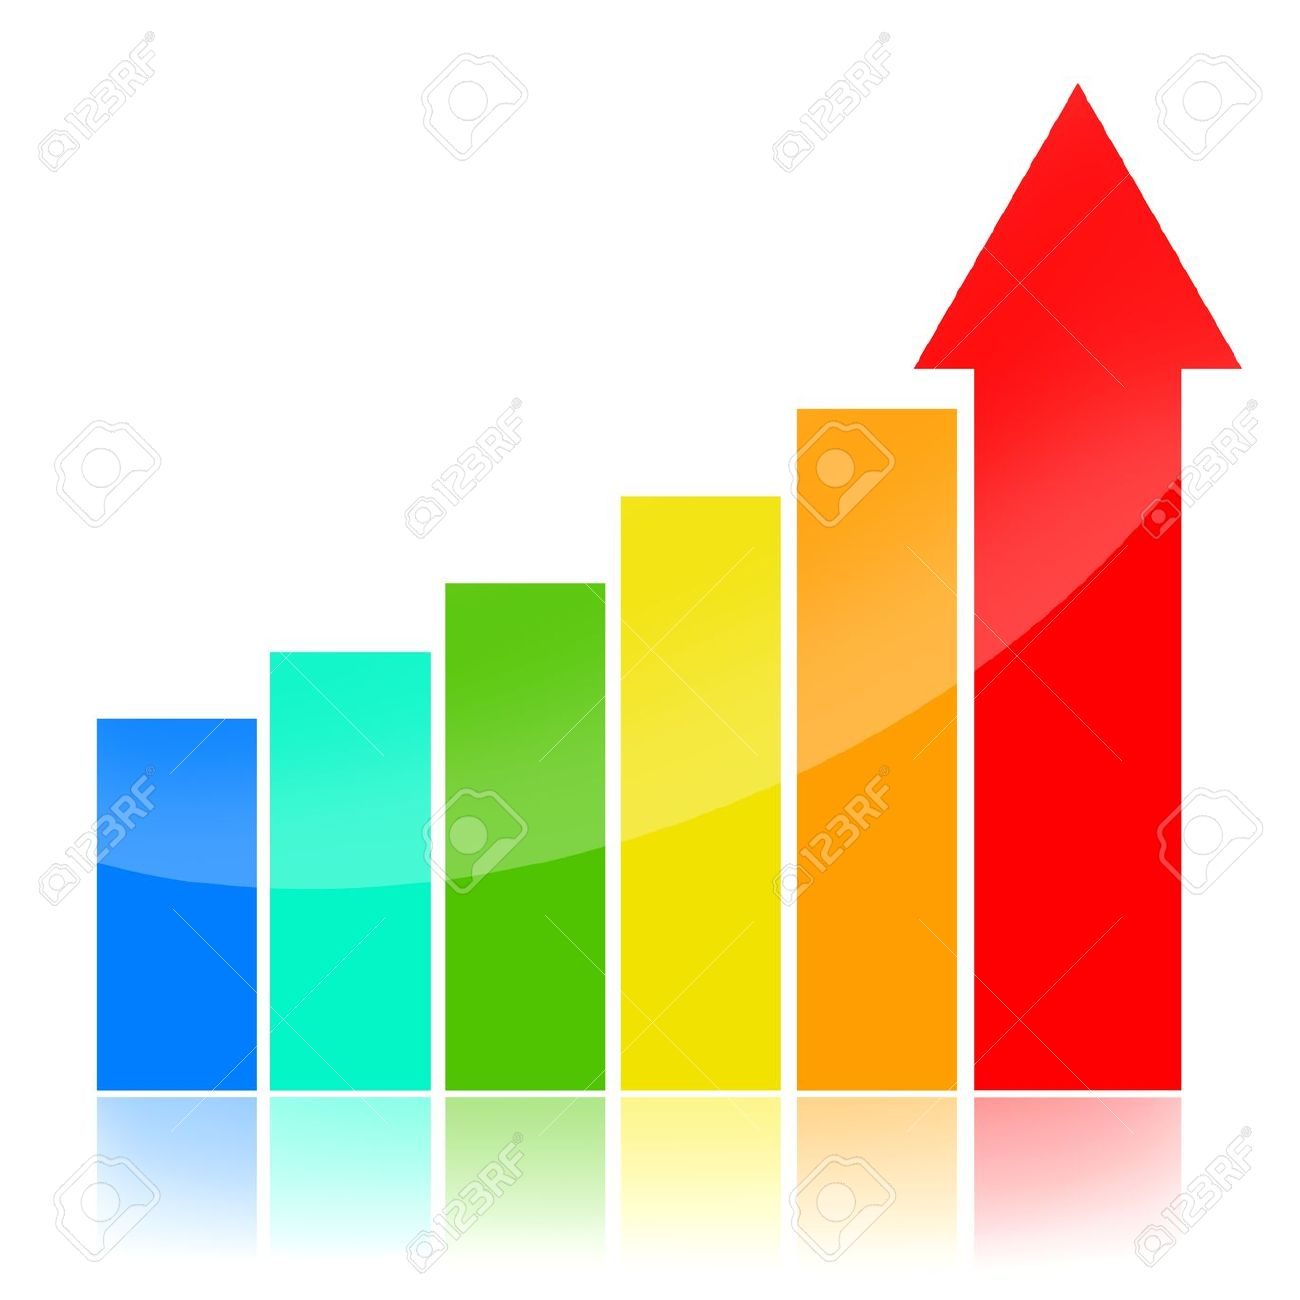 Business success charts, colorful concept isolated over white background Stock Photo - 10182045